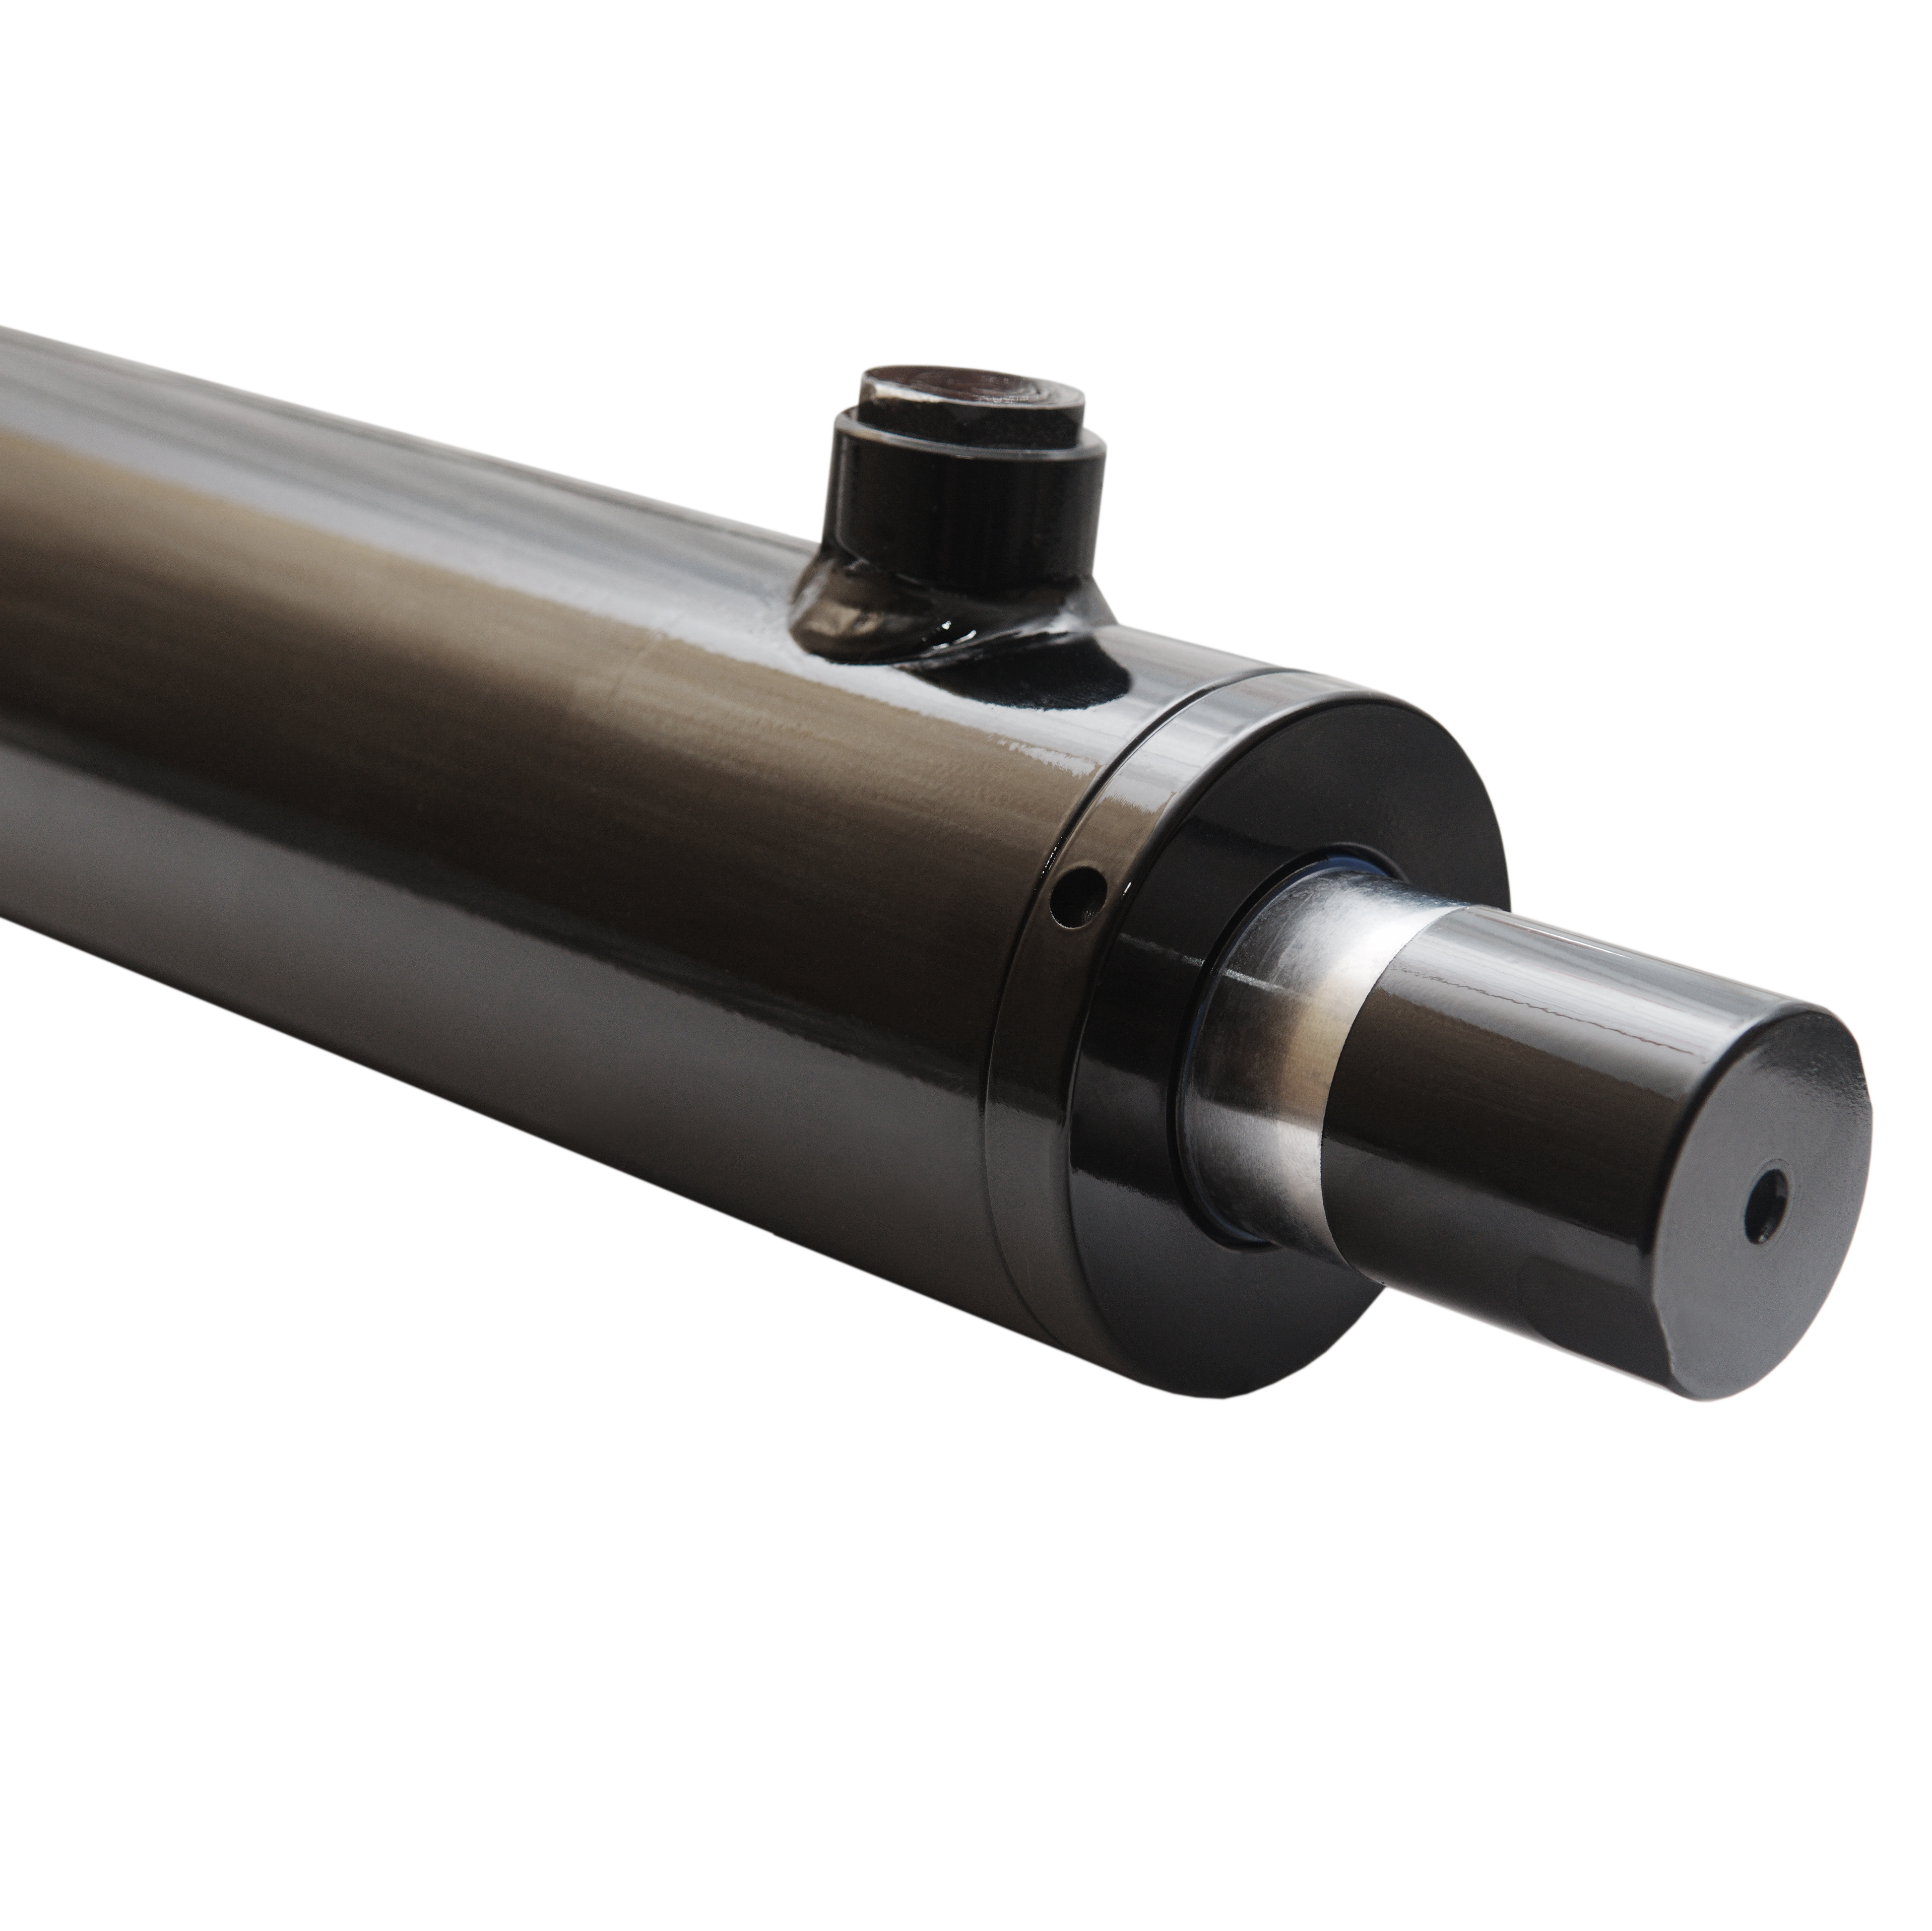 2.5 bore x 8 stroke hydraulic cylinder, welded universal double acting cylinder | Magister Hydraulics